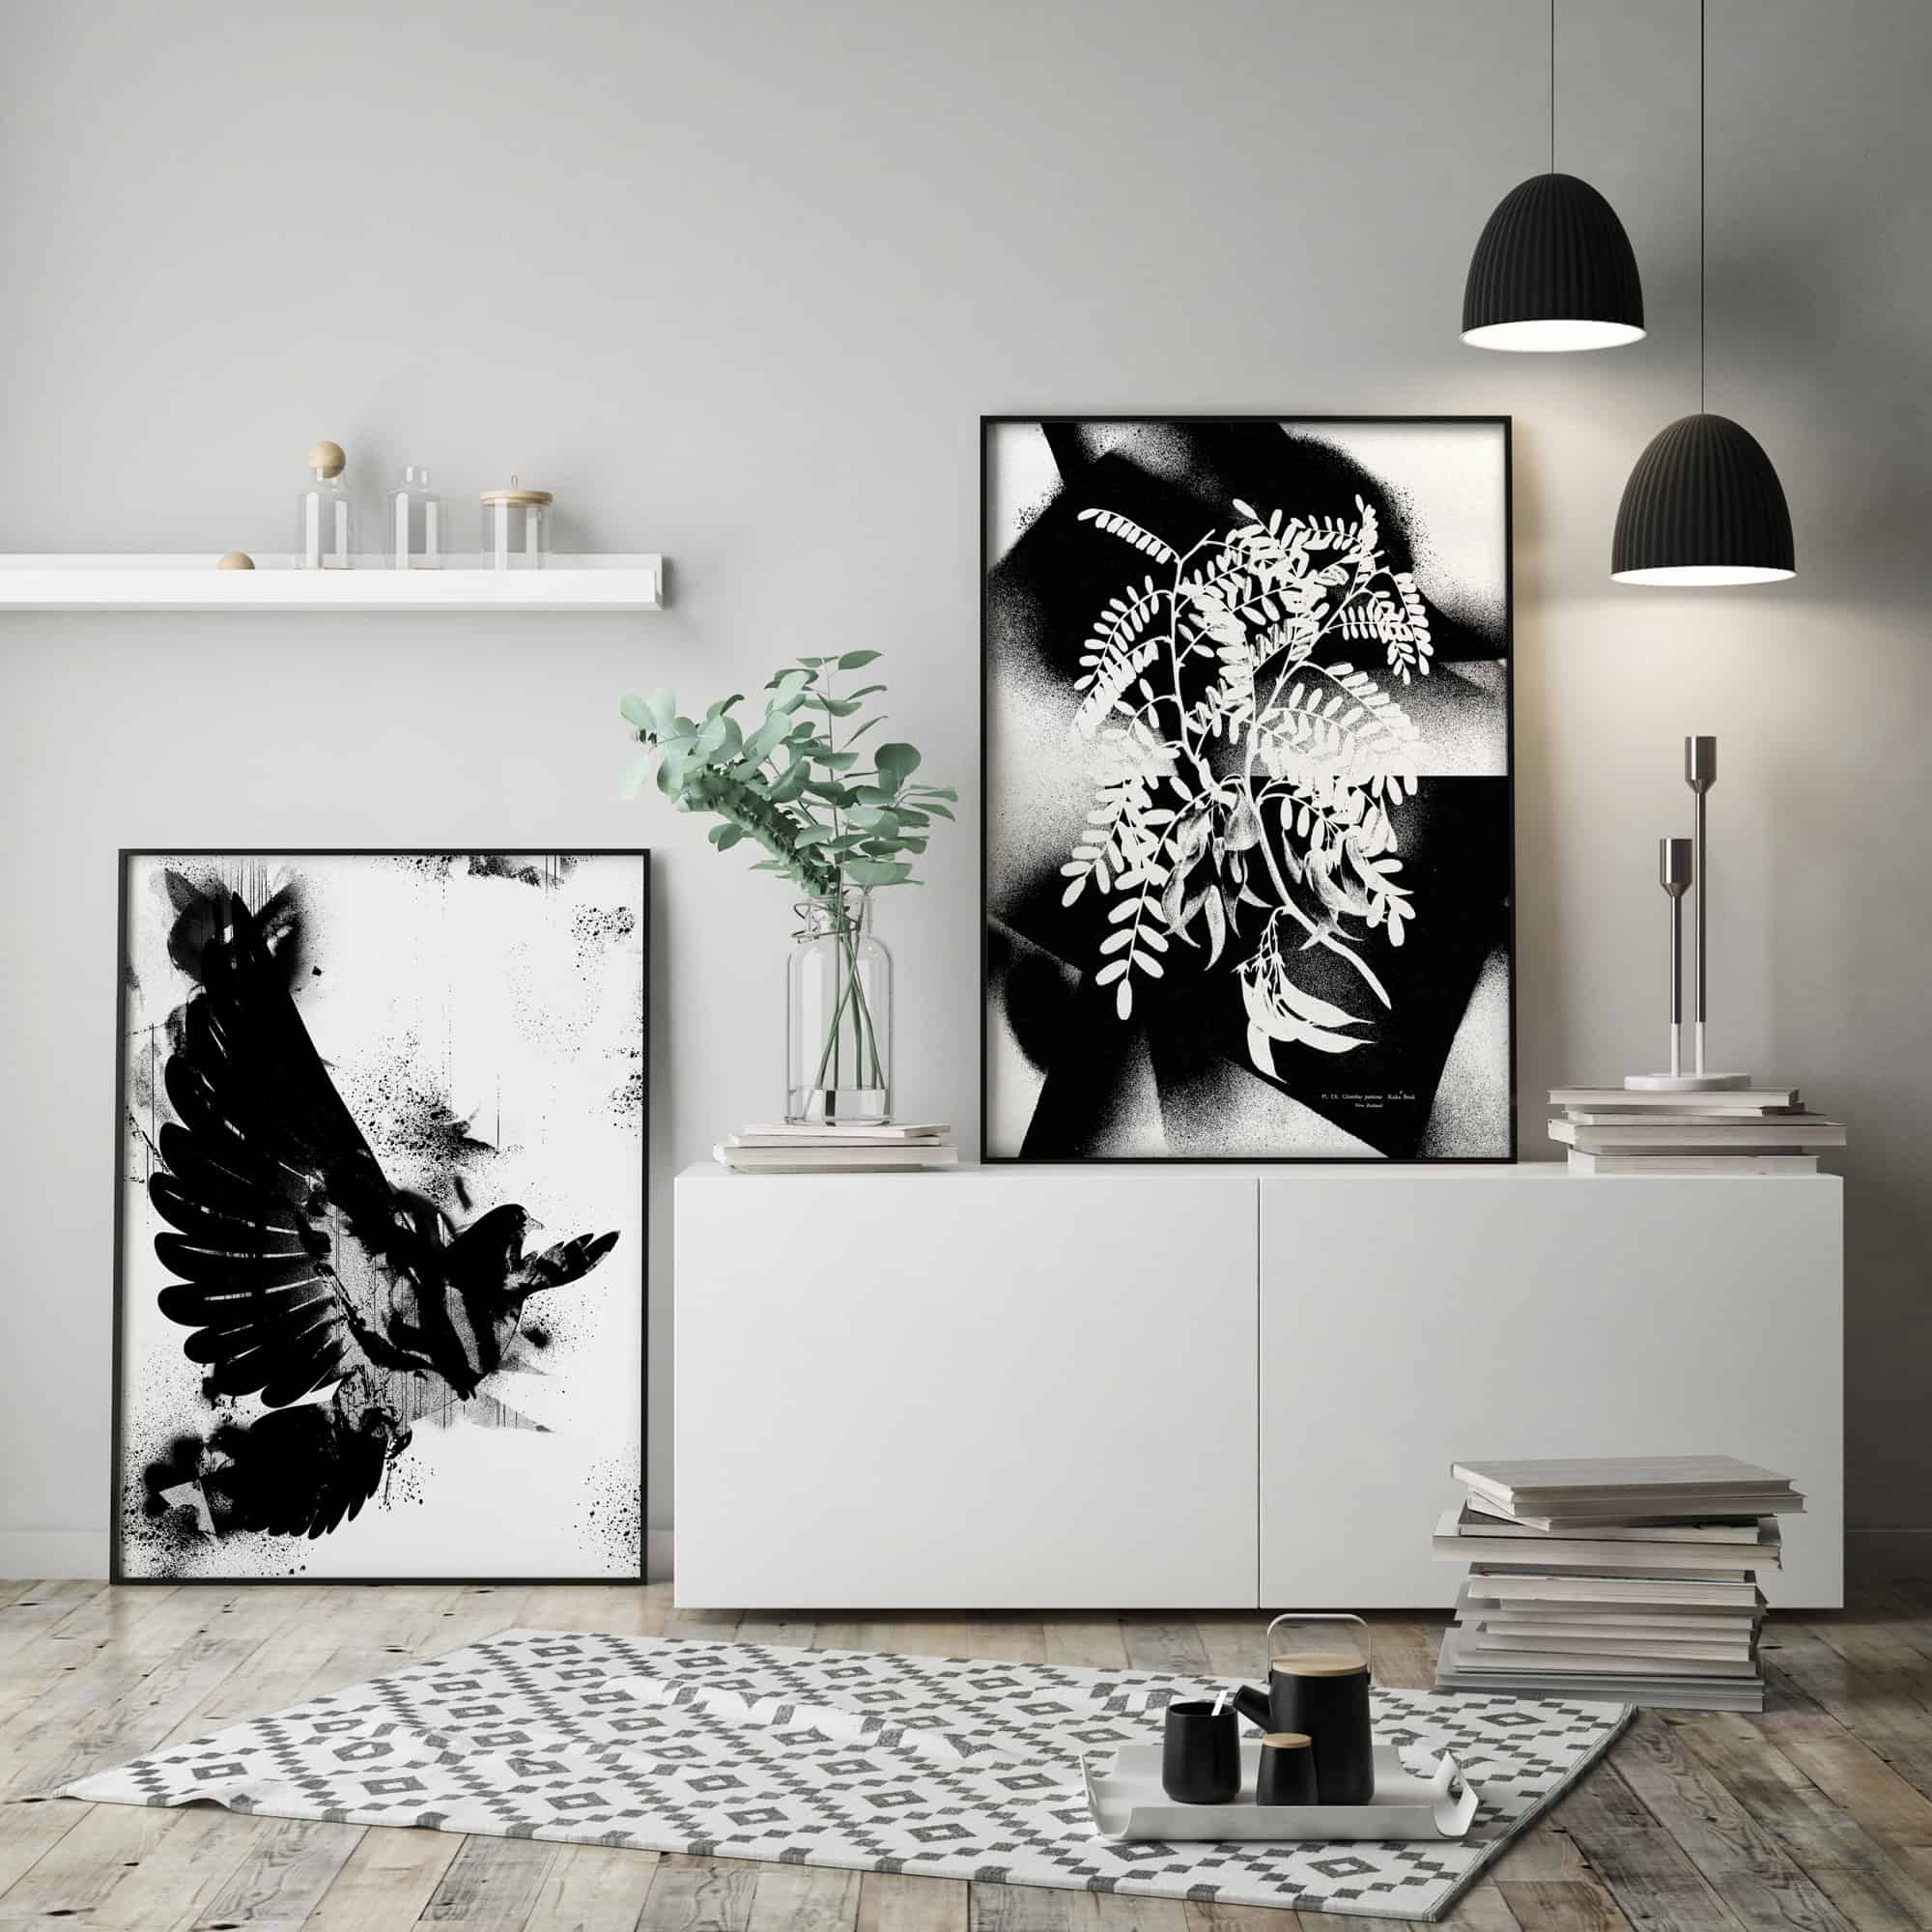 Ink and Drop-black and white affordable artwork graffiti prints